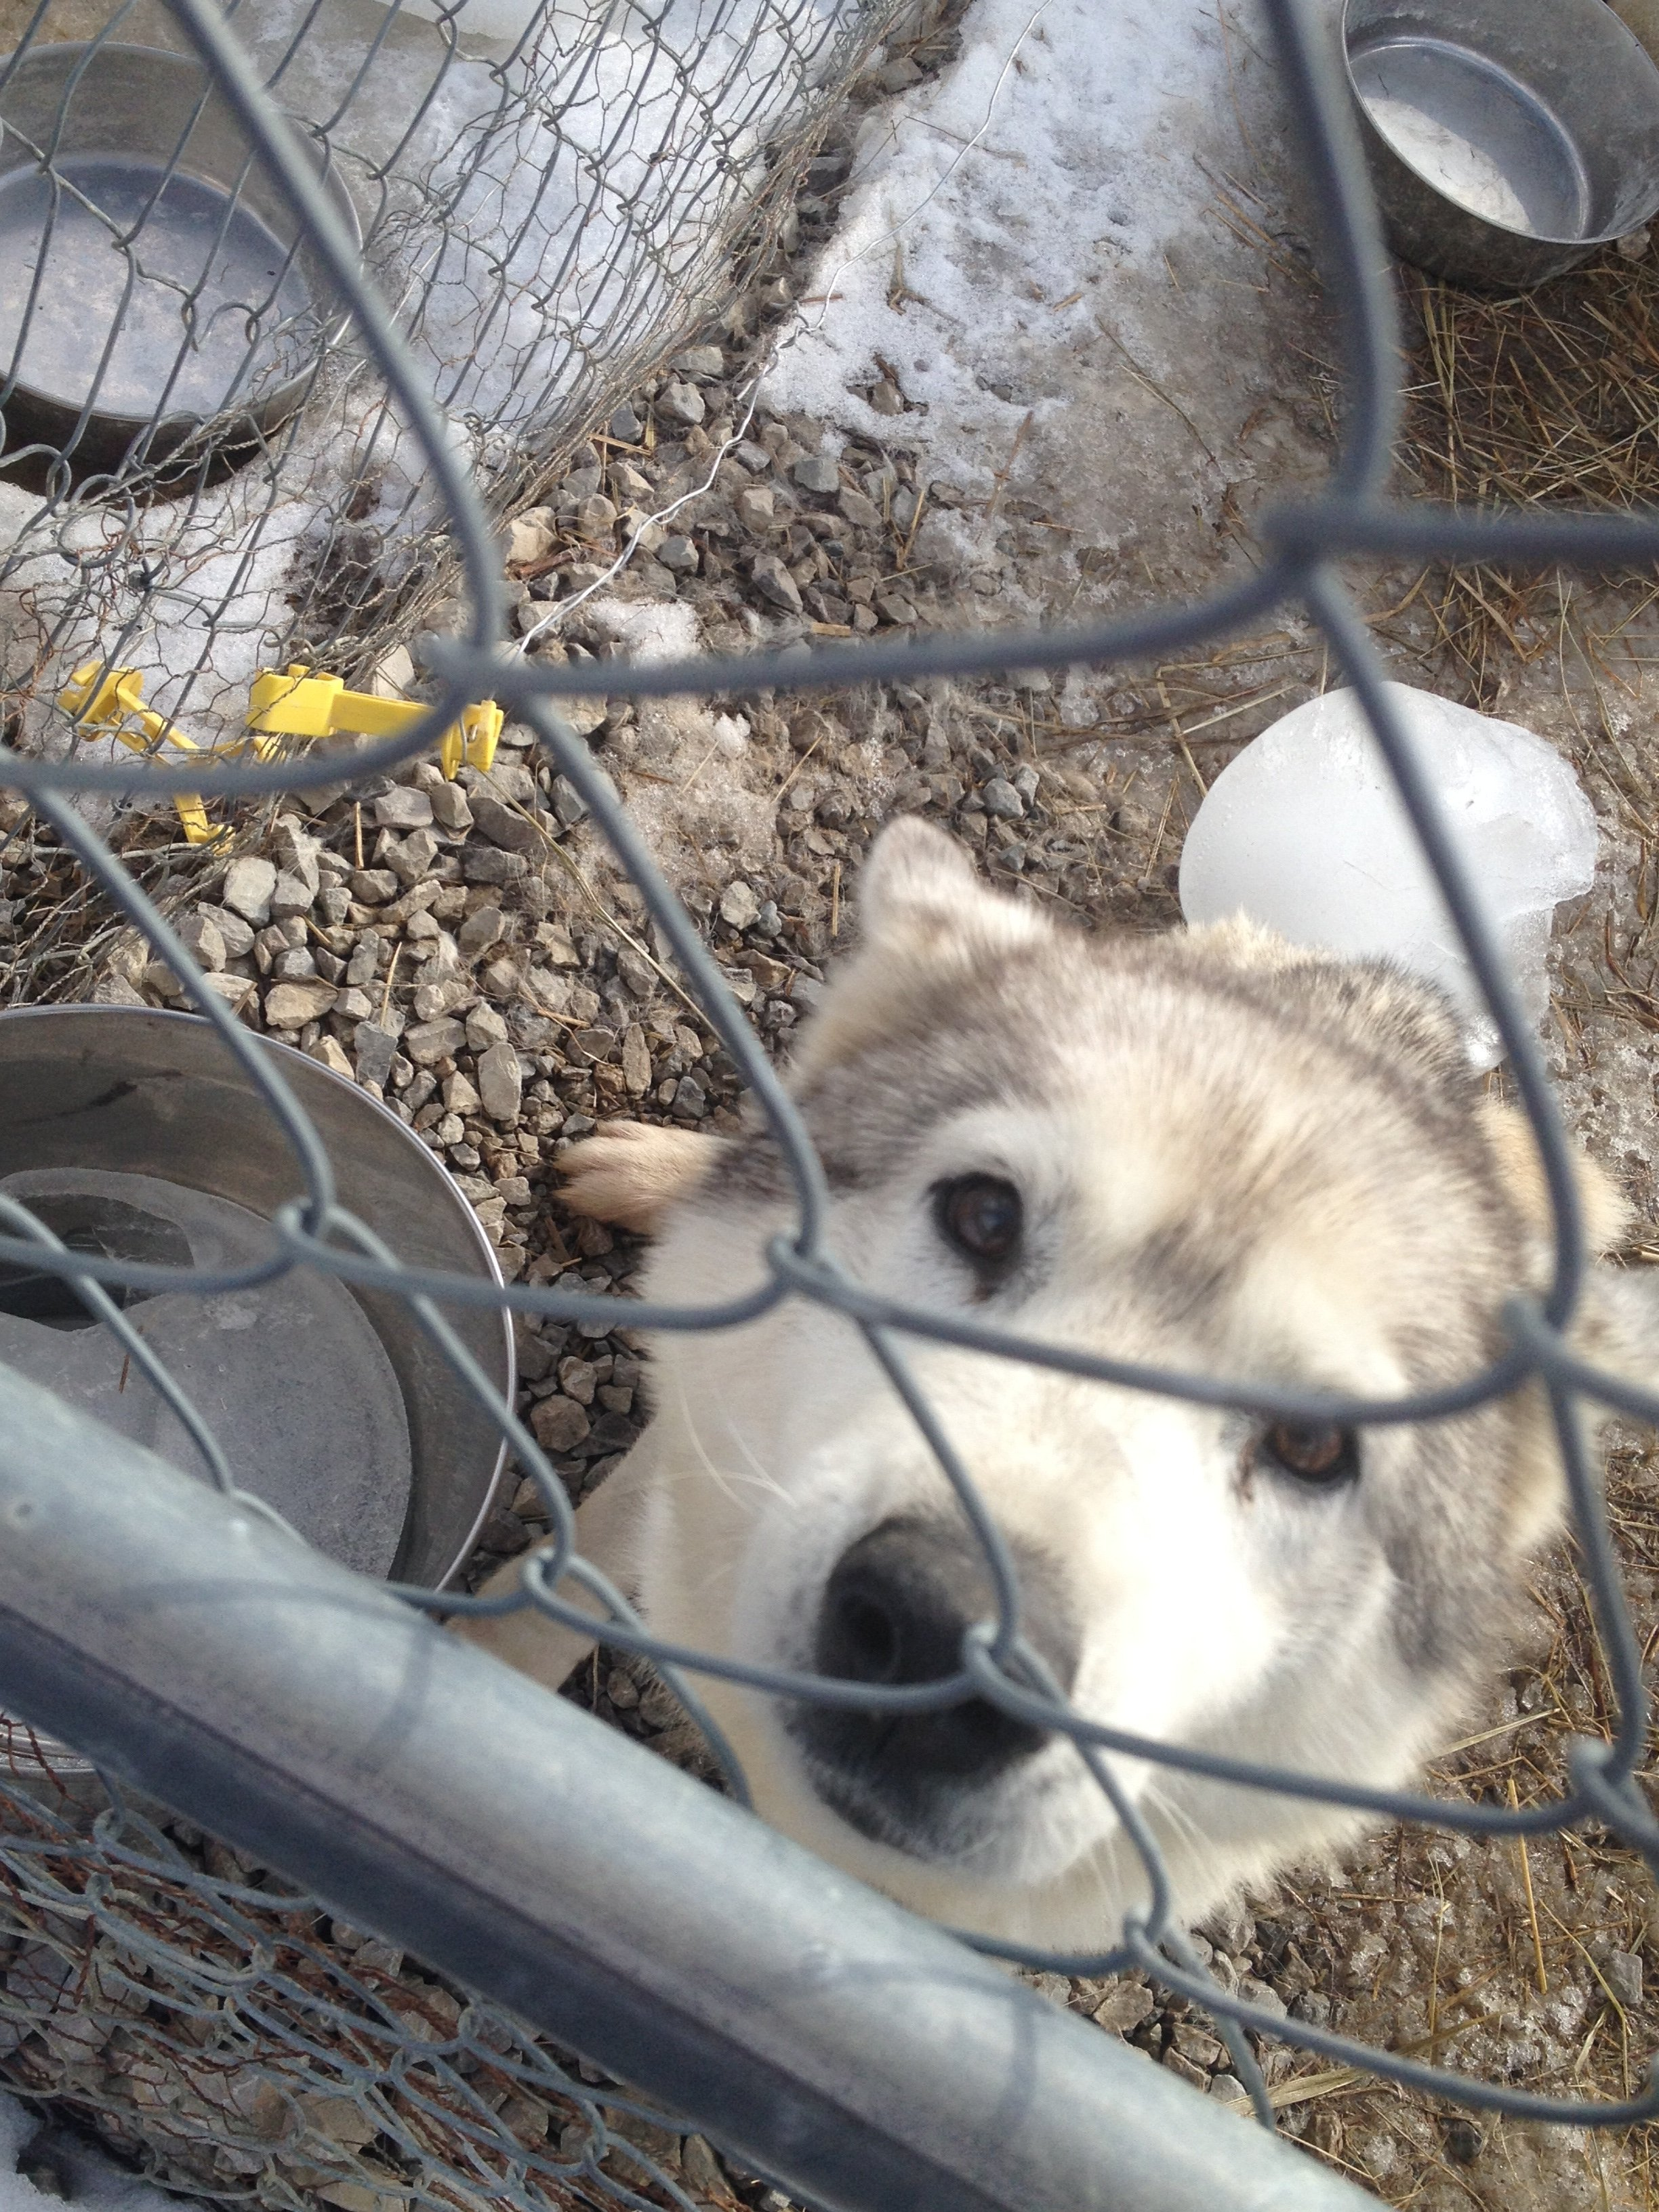 Records show Pope owns huskies, German shepherds, and some mixed breeds